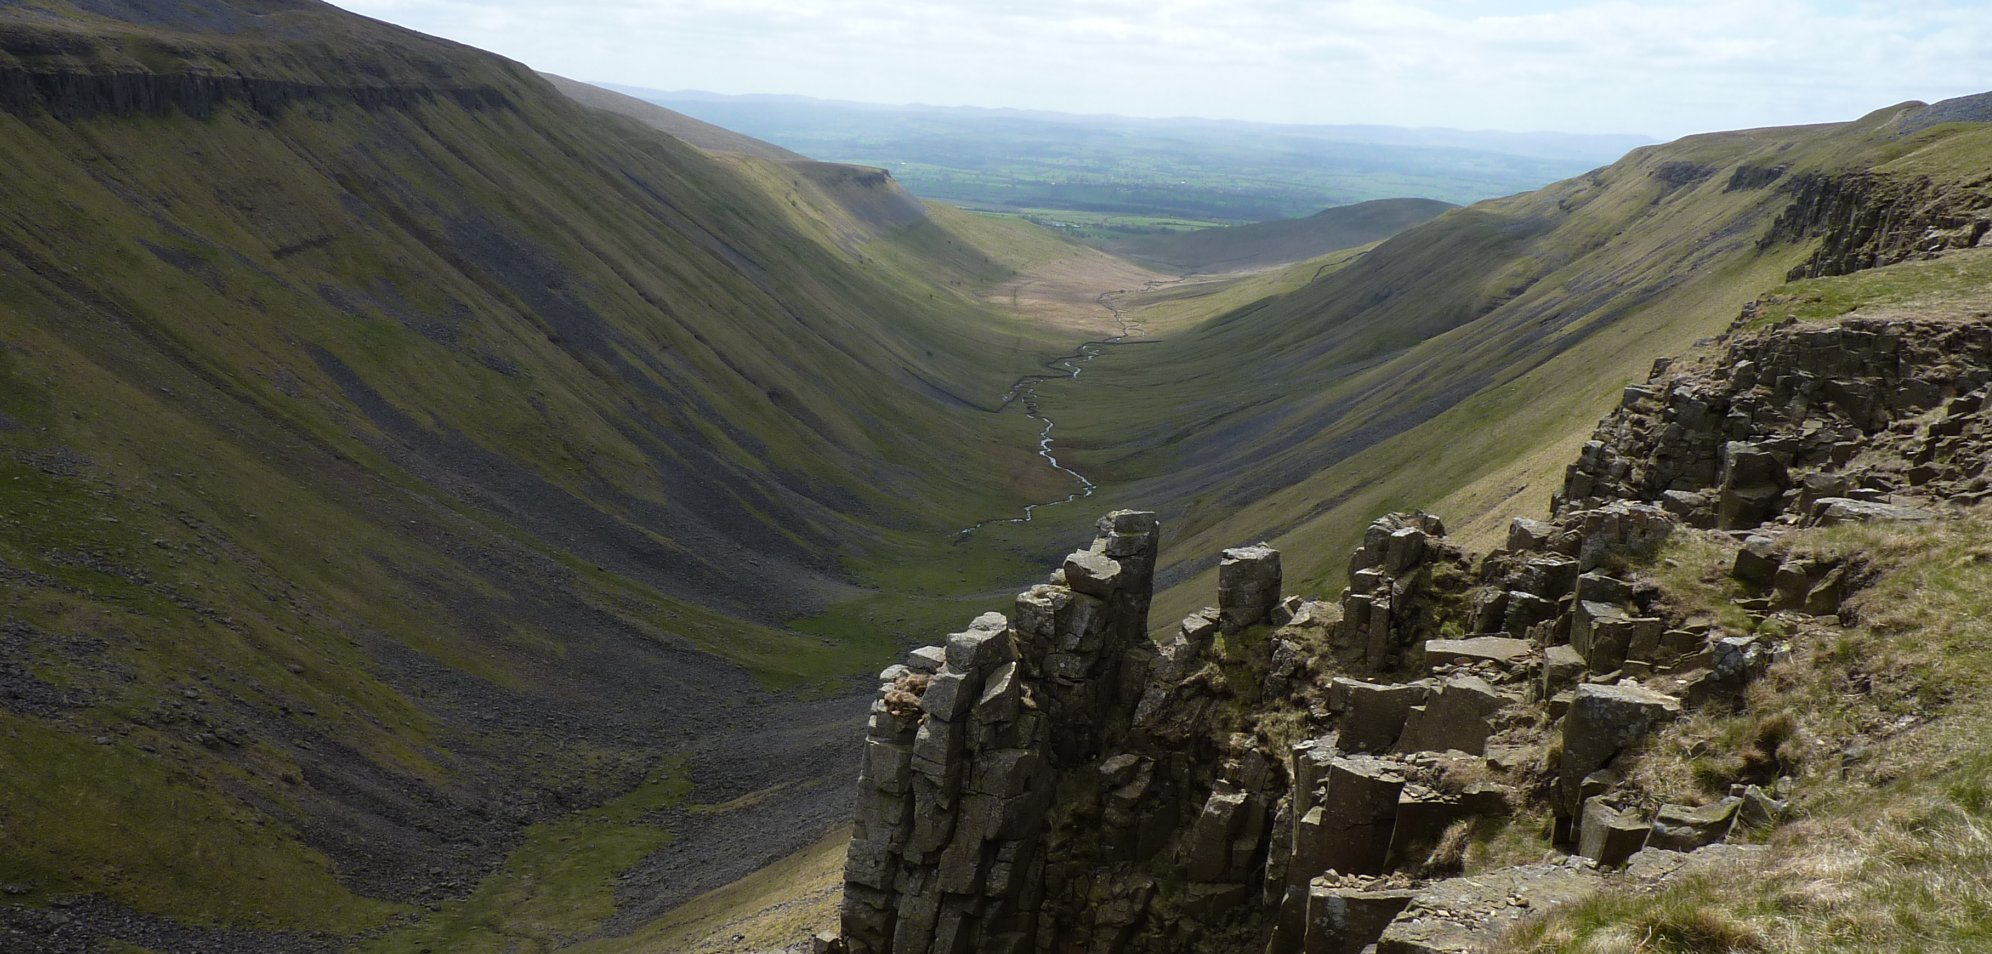 Looking down into High Cup Gill with High Cupgill Beck running through it